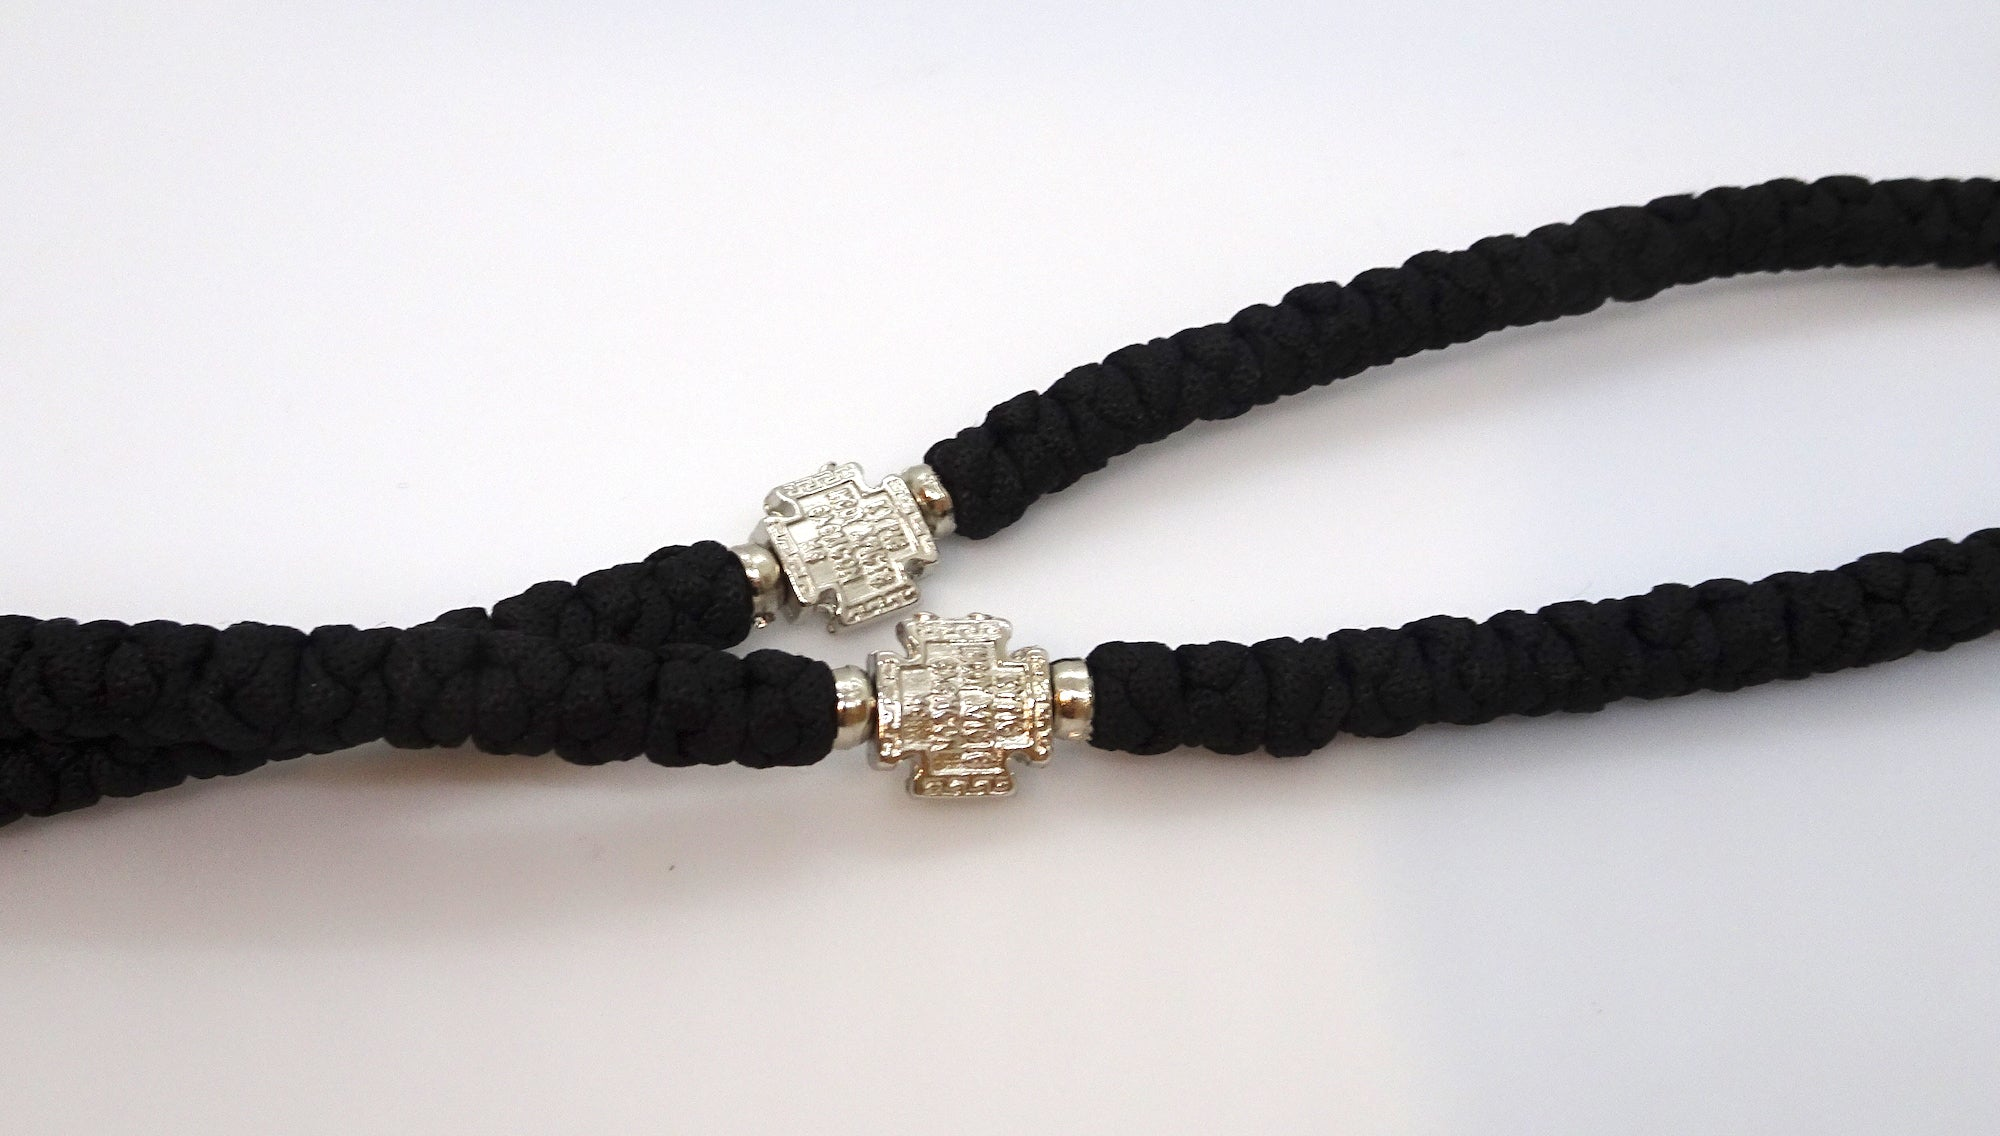 Extra Long Orthodox Prayer Rope with 100 Knots and Tassel in Black Color